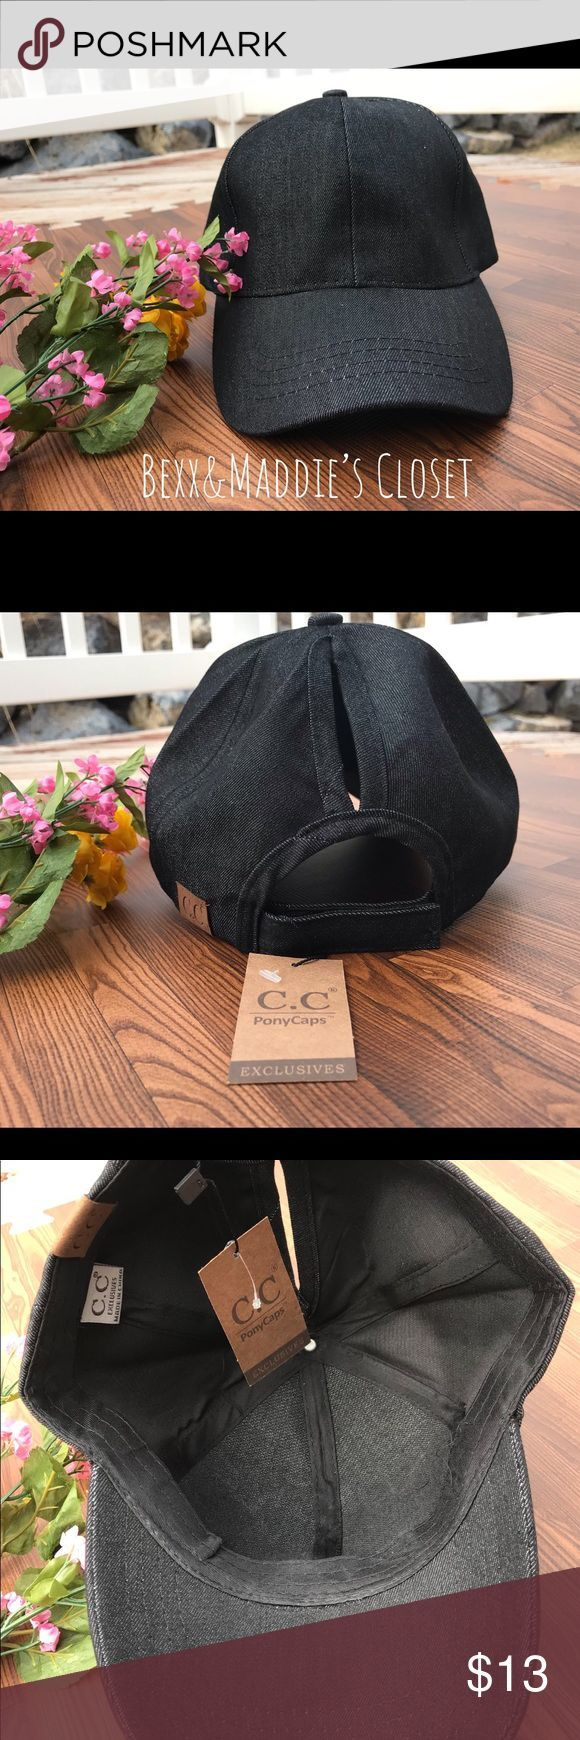 ☀️NWT Ladies dark denim trucker pony cap Fun and perfect for lazy days of summer! Do a messy bun or messy pony. It's a dark denim color. From